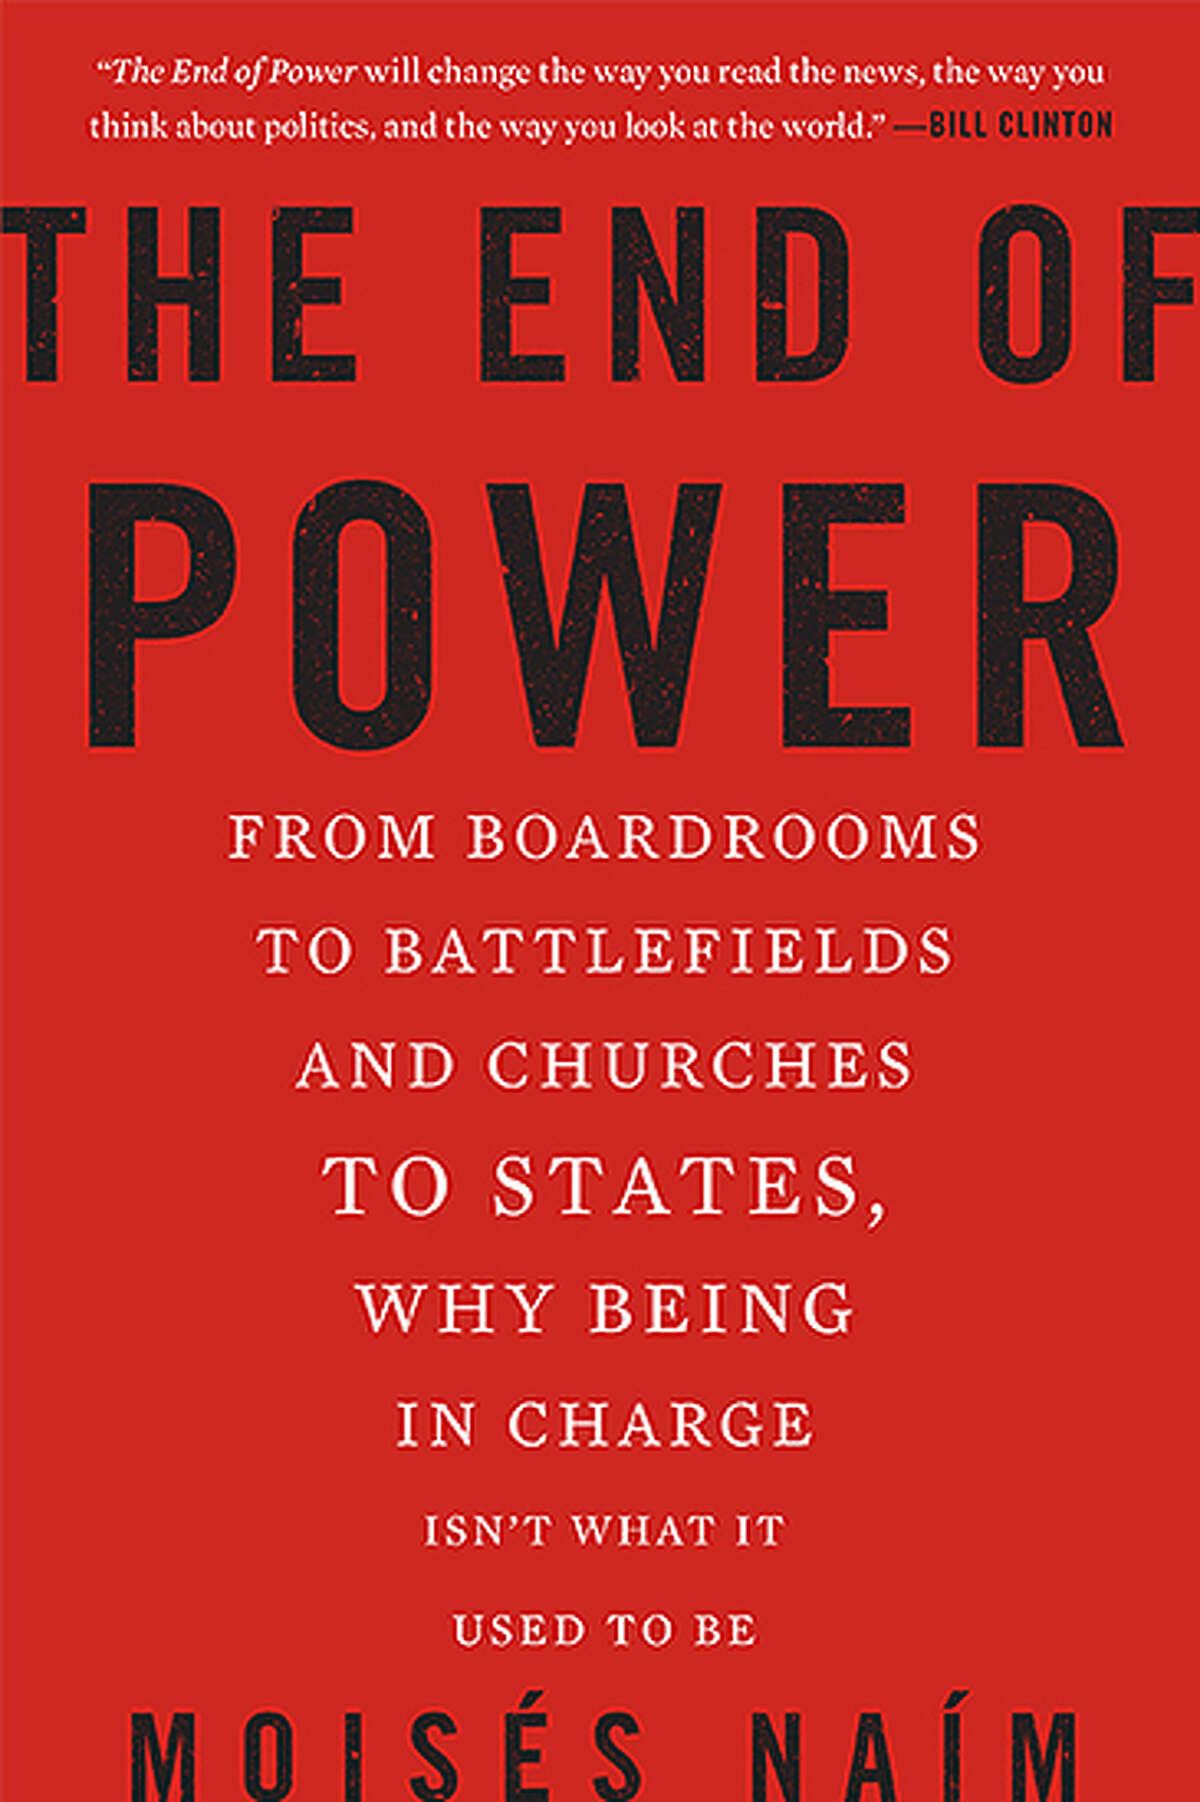 The End of Power by Moises Naim